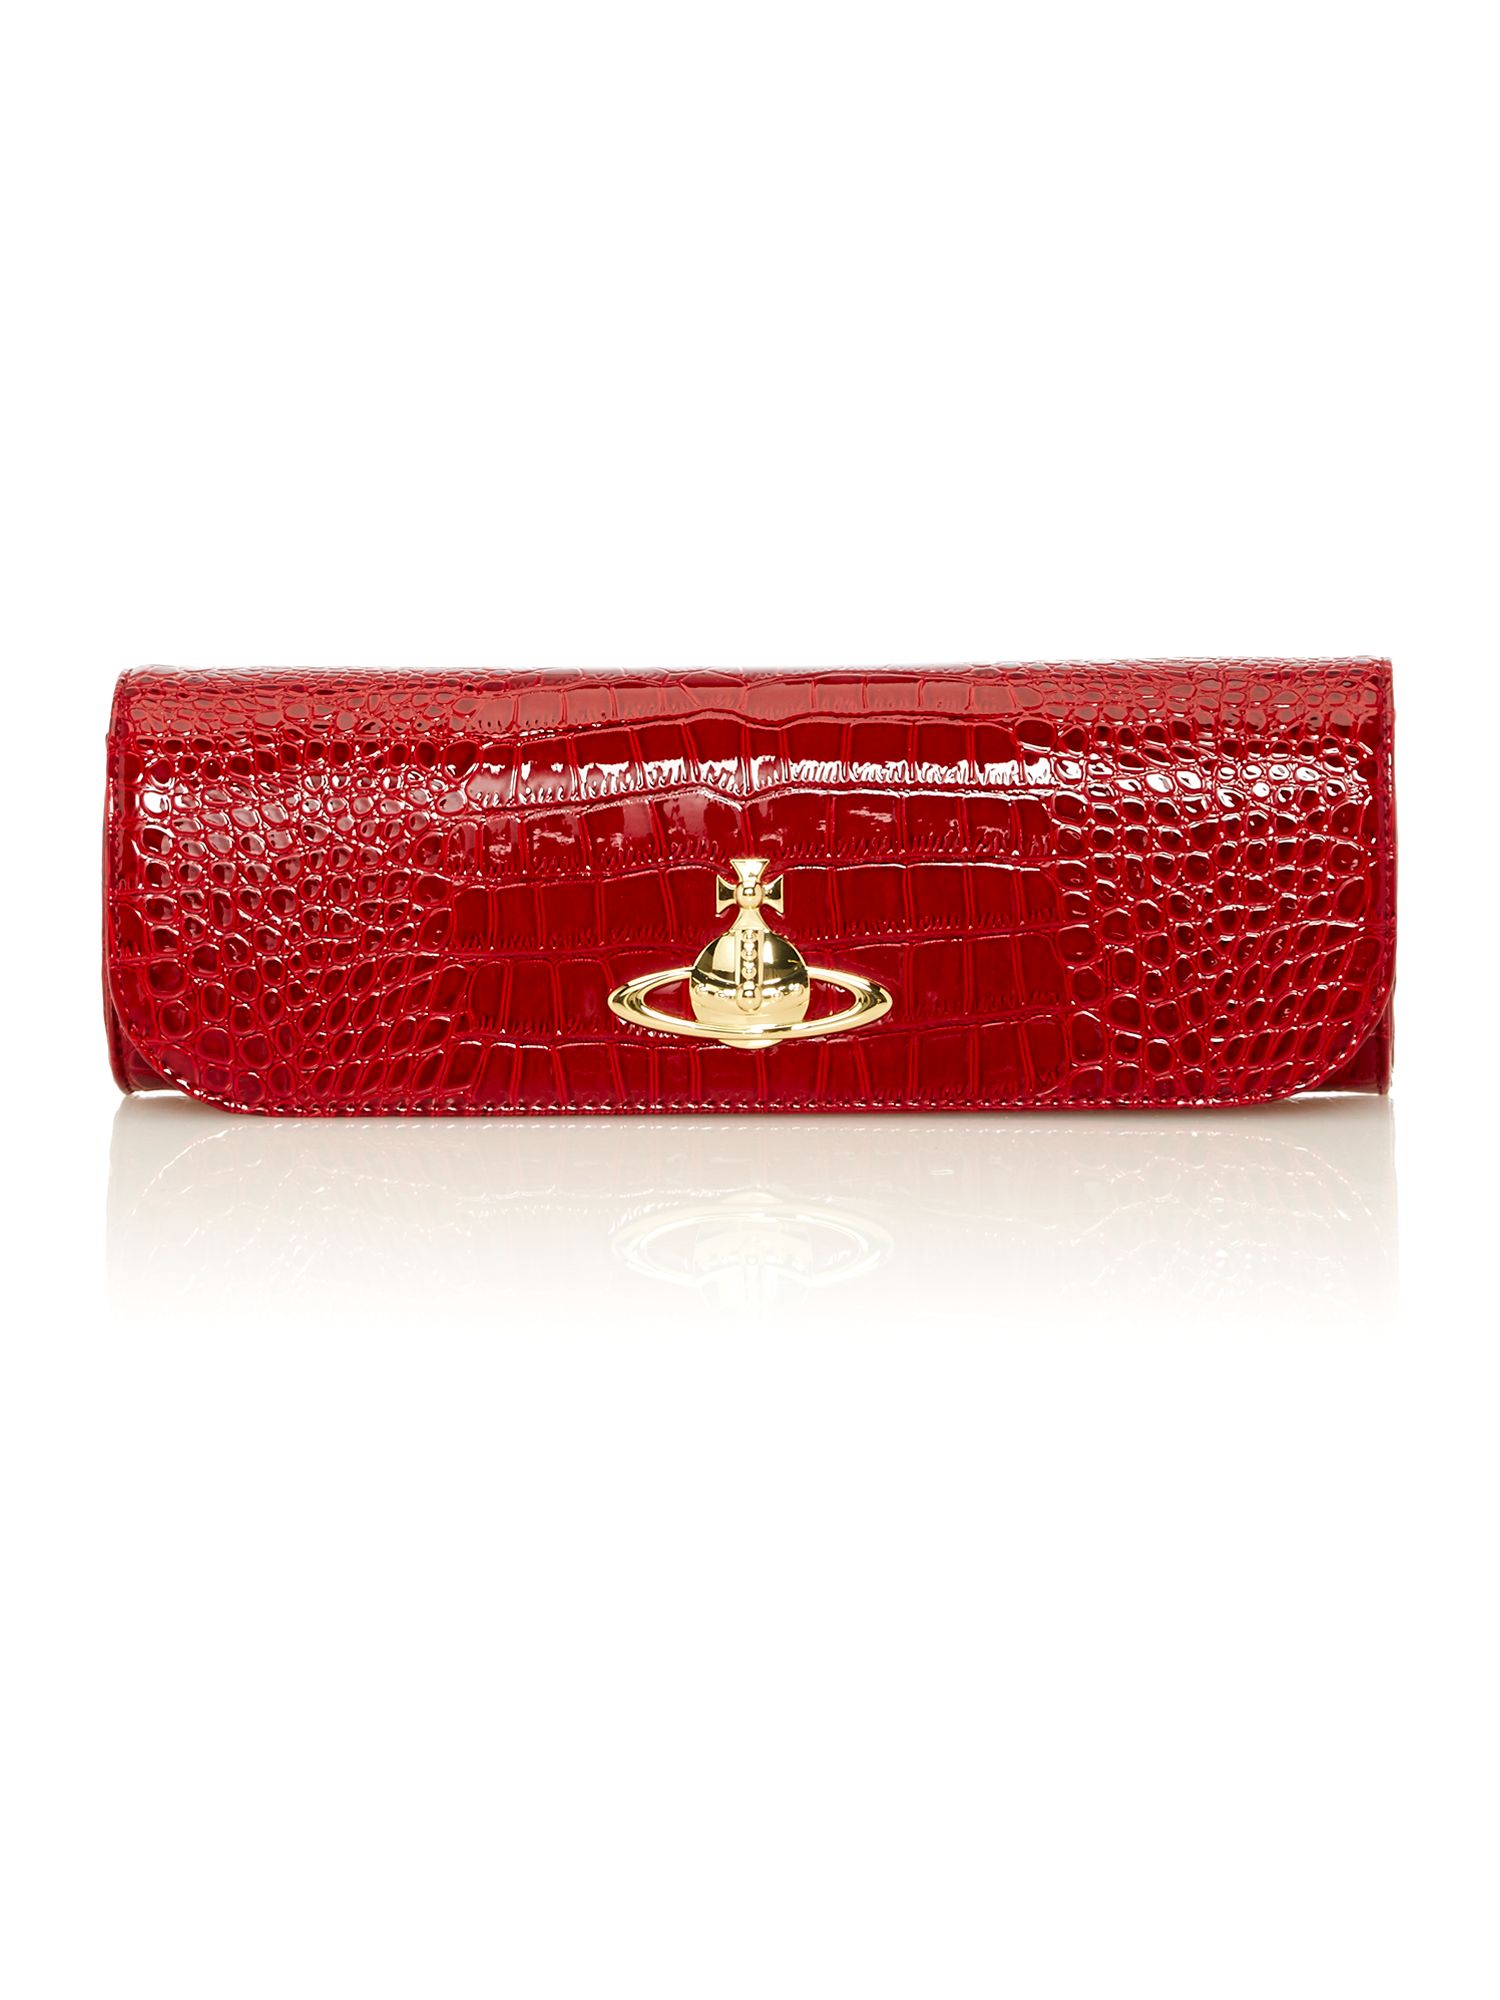 New Chancery red chain clutch bag